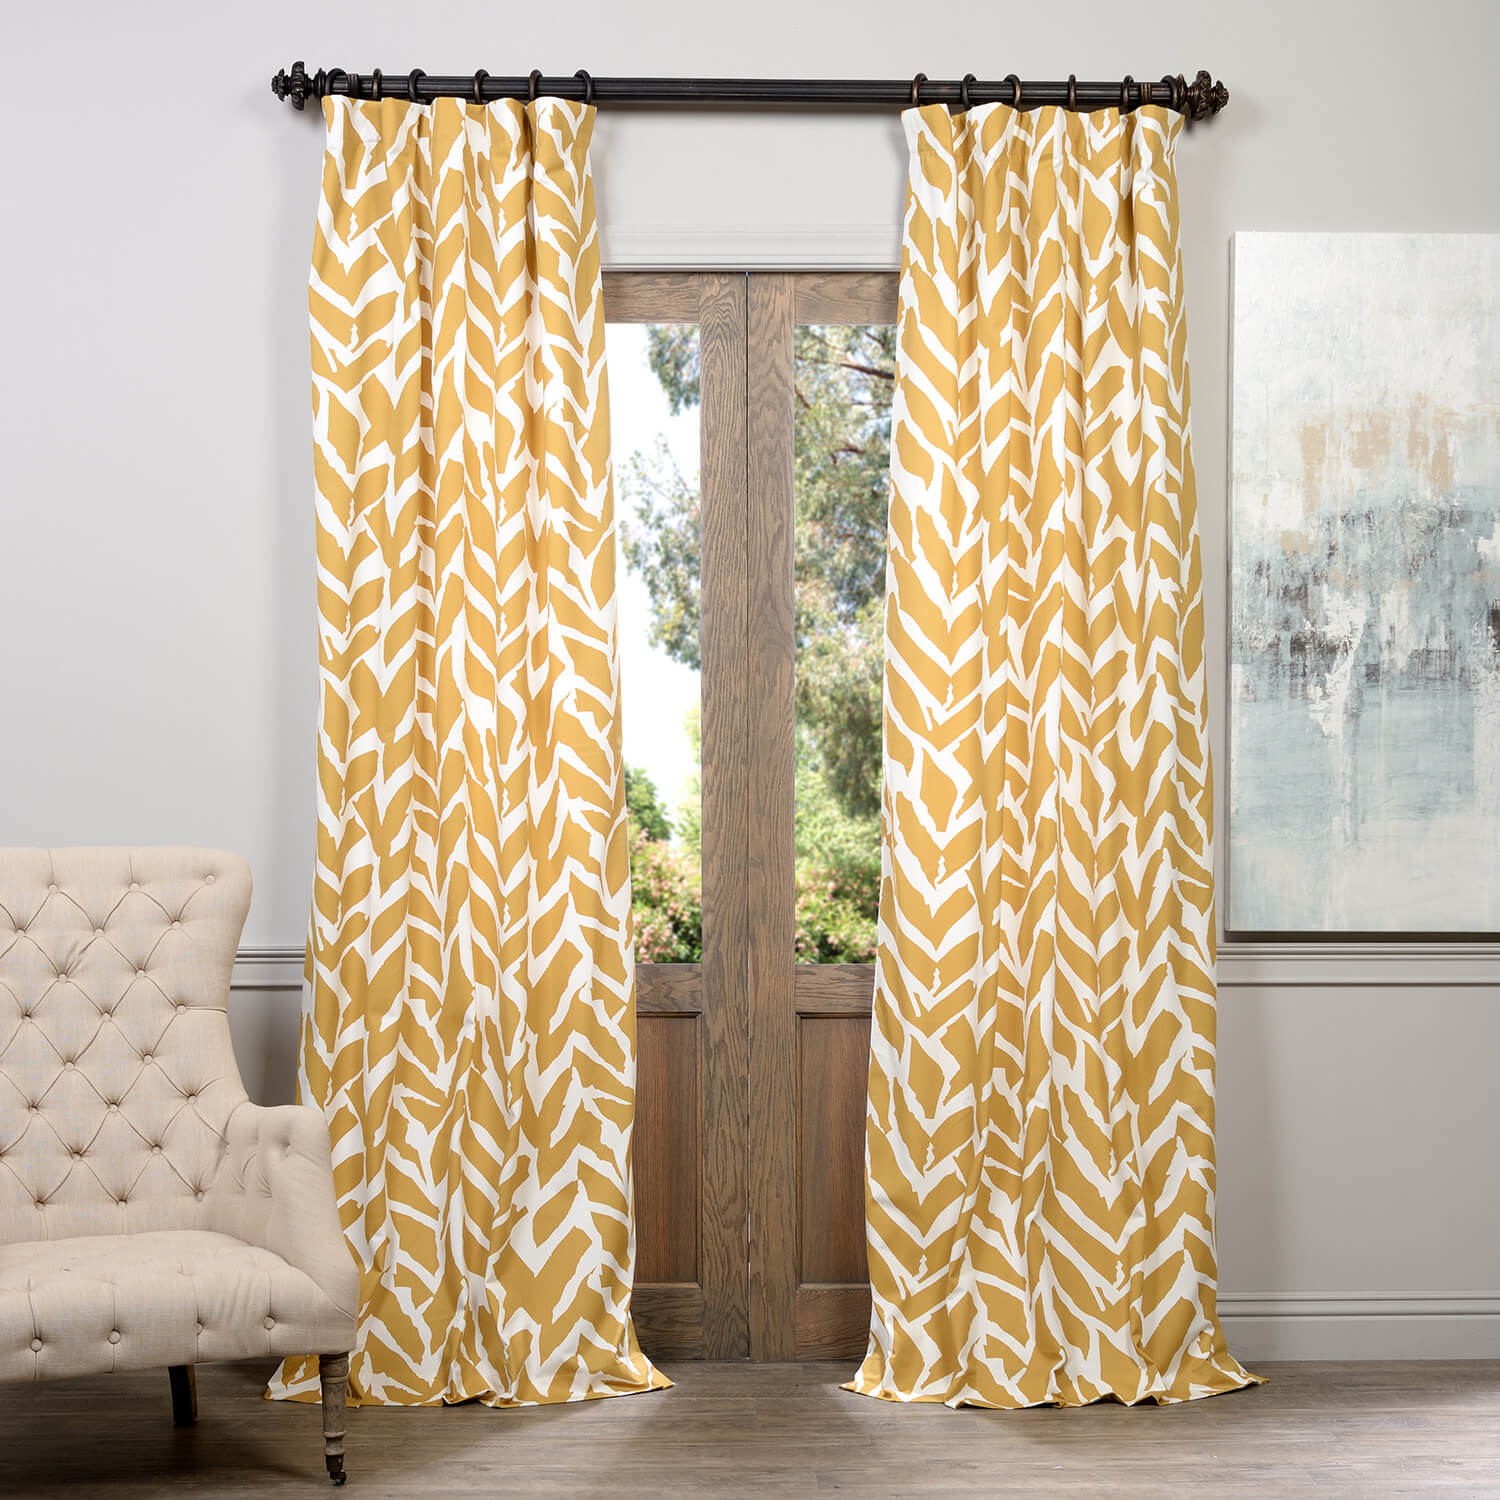 Sahara Desert Printed Cotton Curtain